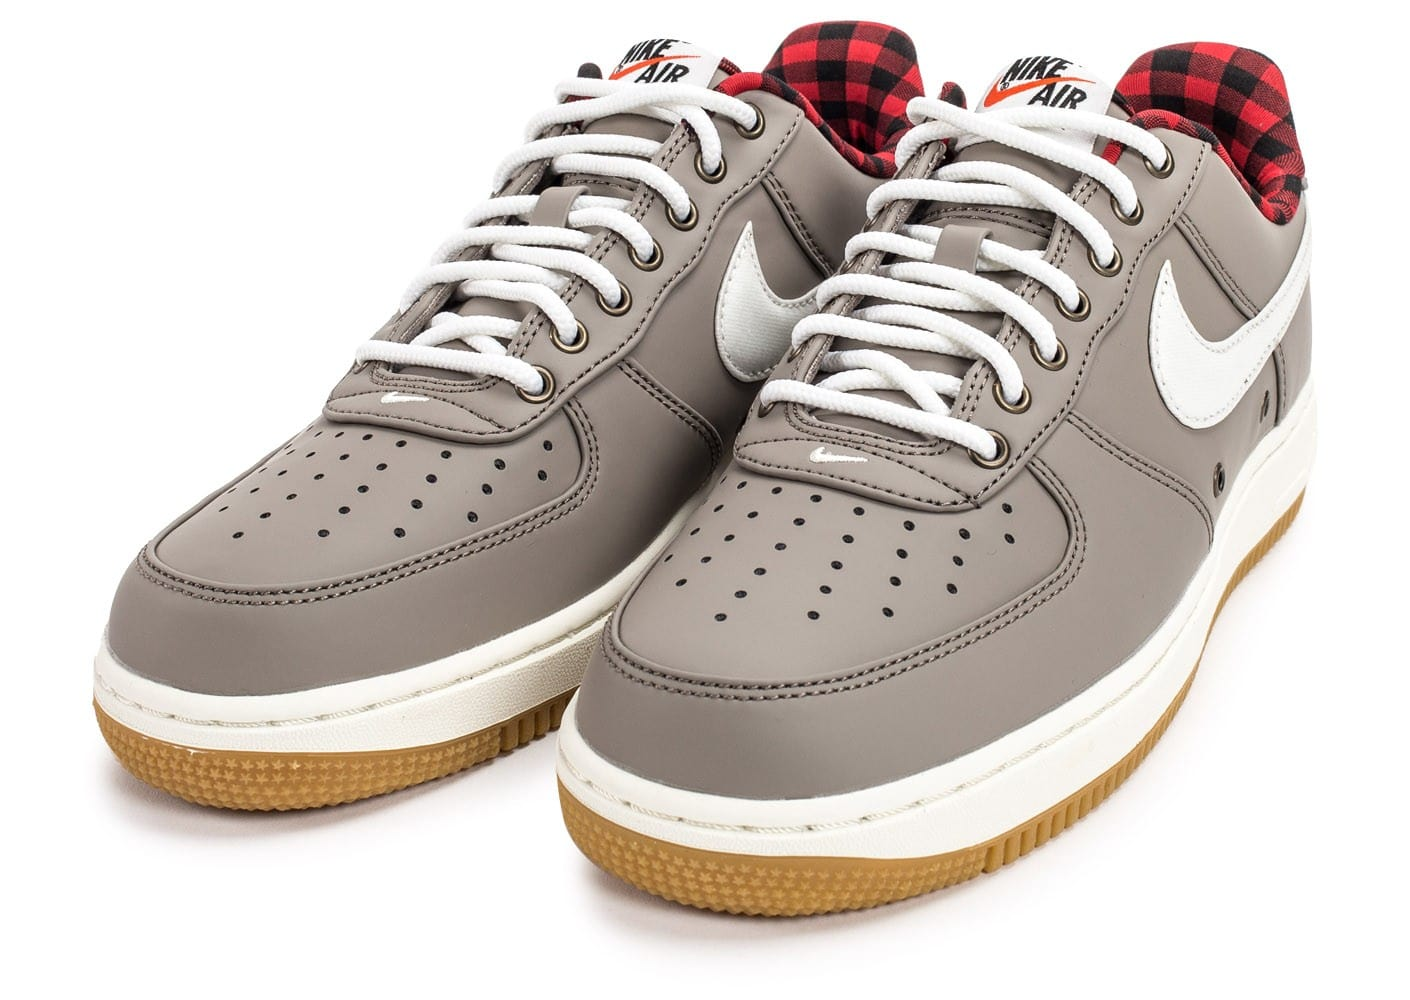 nike air force 1 39 07 lv08 lumberjack grise chaussures baskets homme chausport. Black Bedroom Furniture Sets. Home Design Ideas